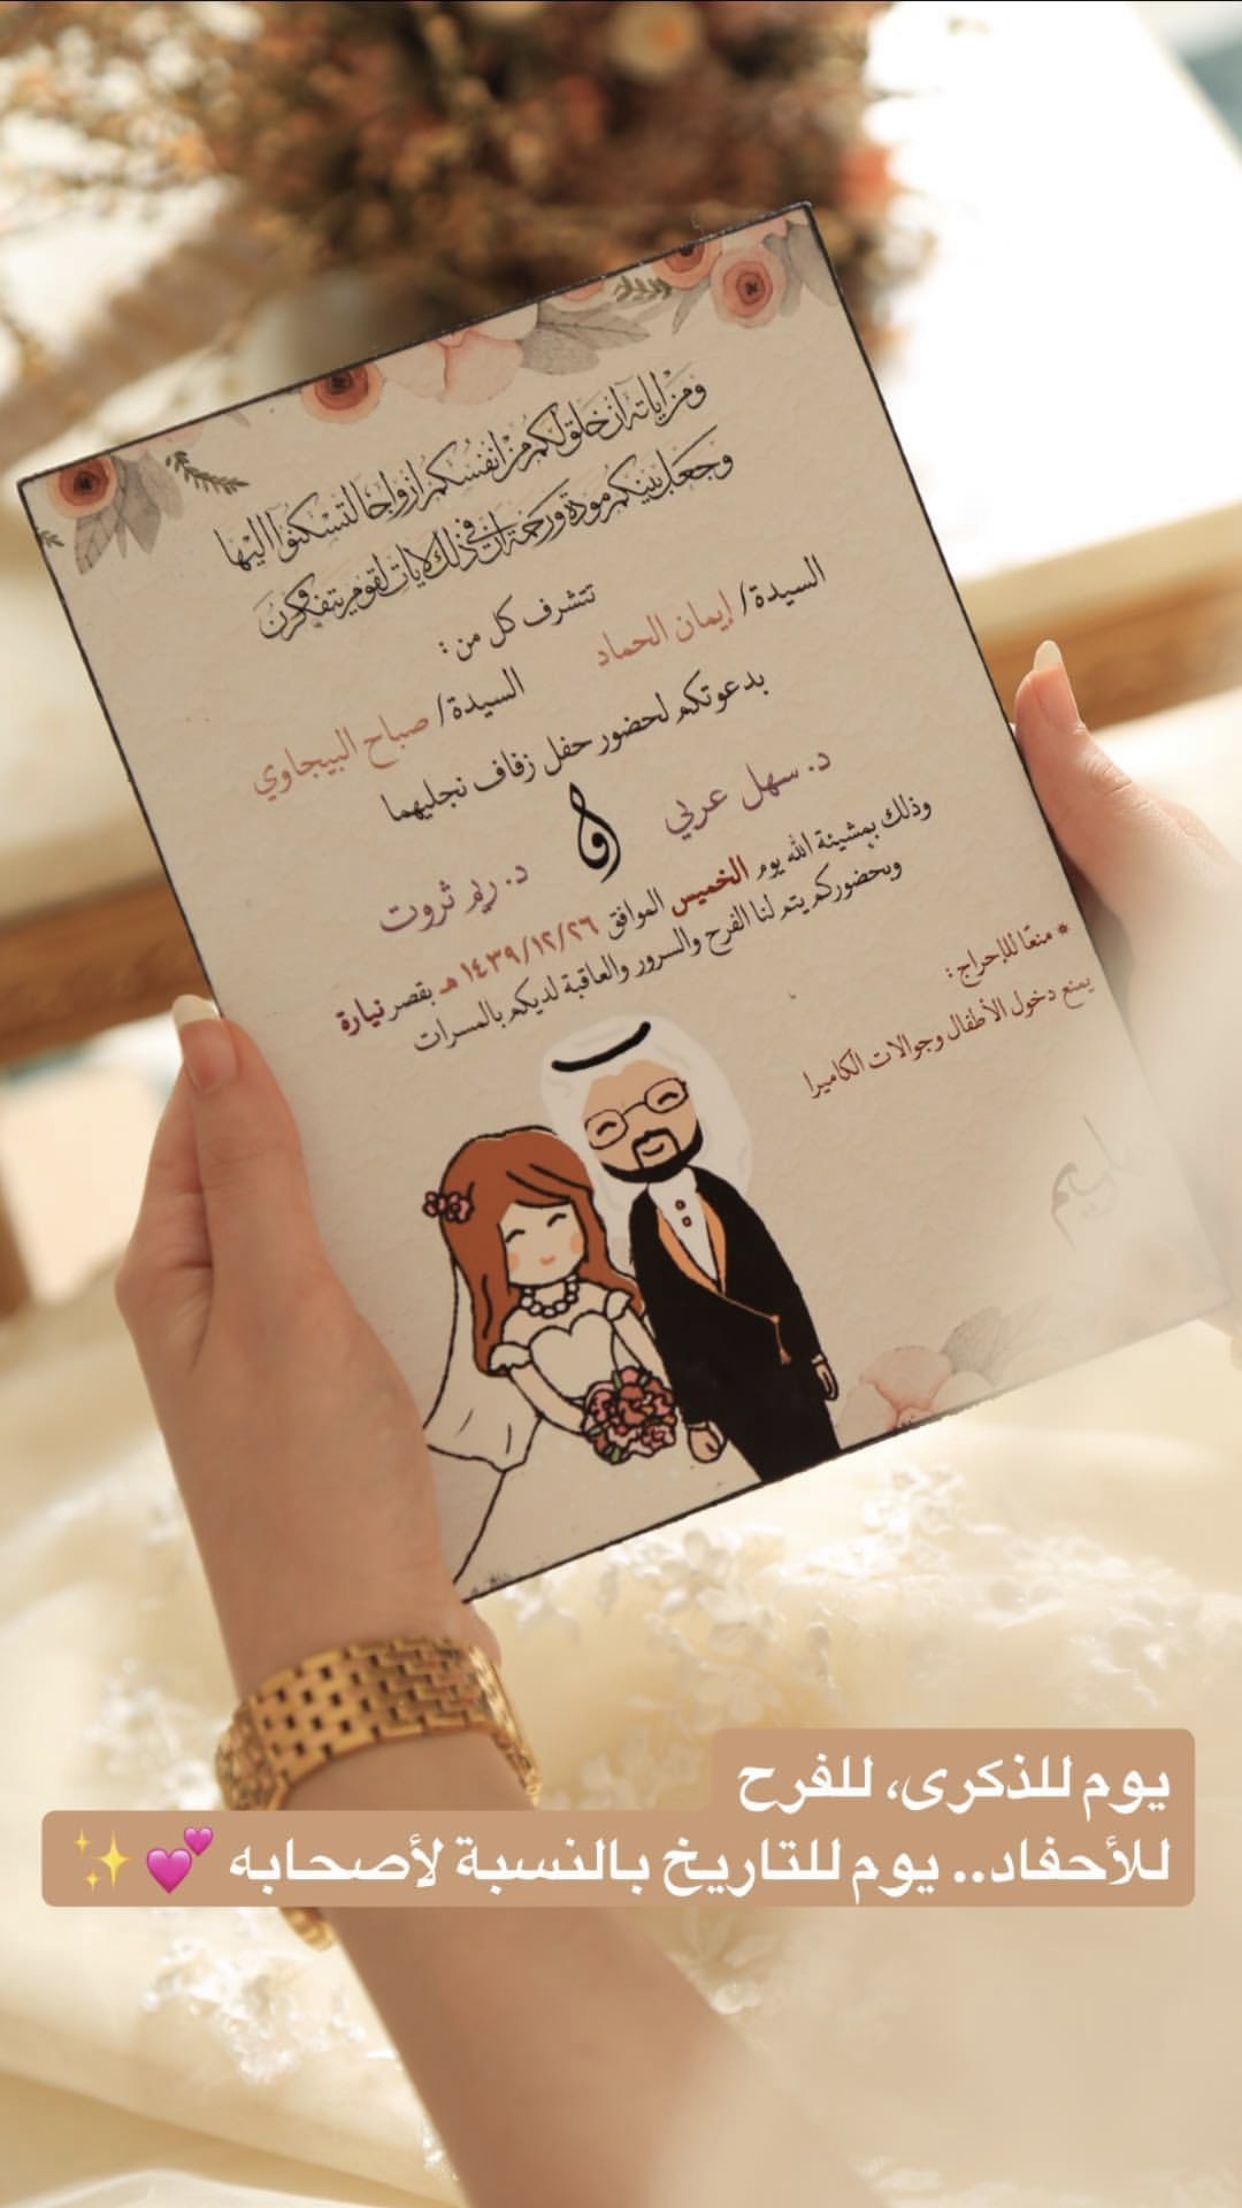 Pin By Shroog Al Hamad On Ro0ofa 0 Snapchat Wedding Invitation Card Design Wedding Card Design Wedding Invitations